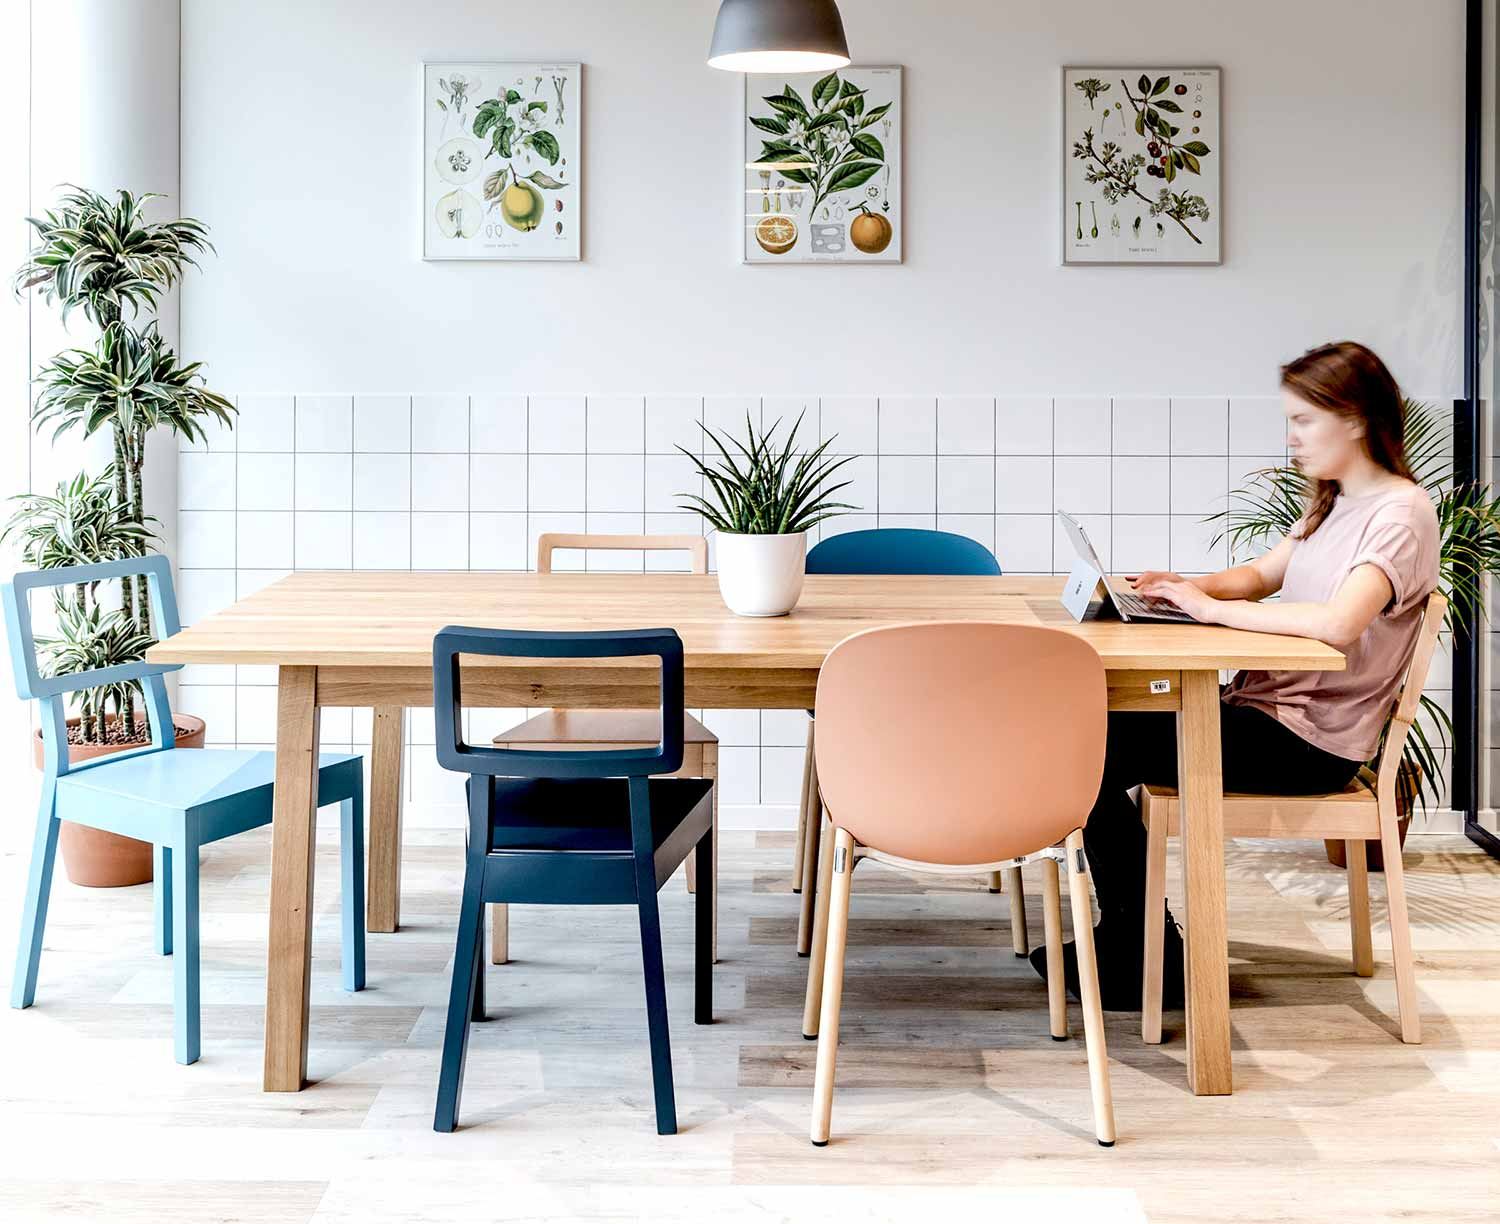 Bright scandinavian style cafeteria space in office featuring Coral RBM Noor chair with wooden legs